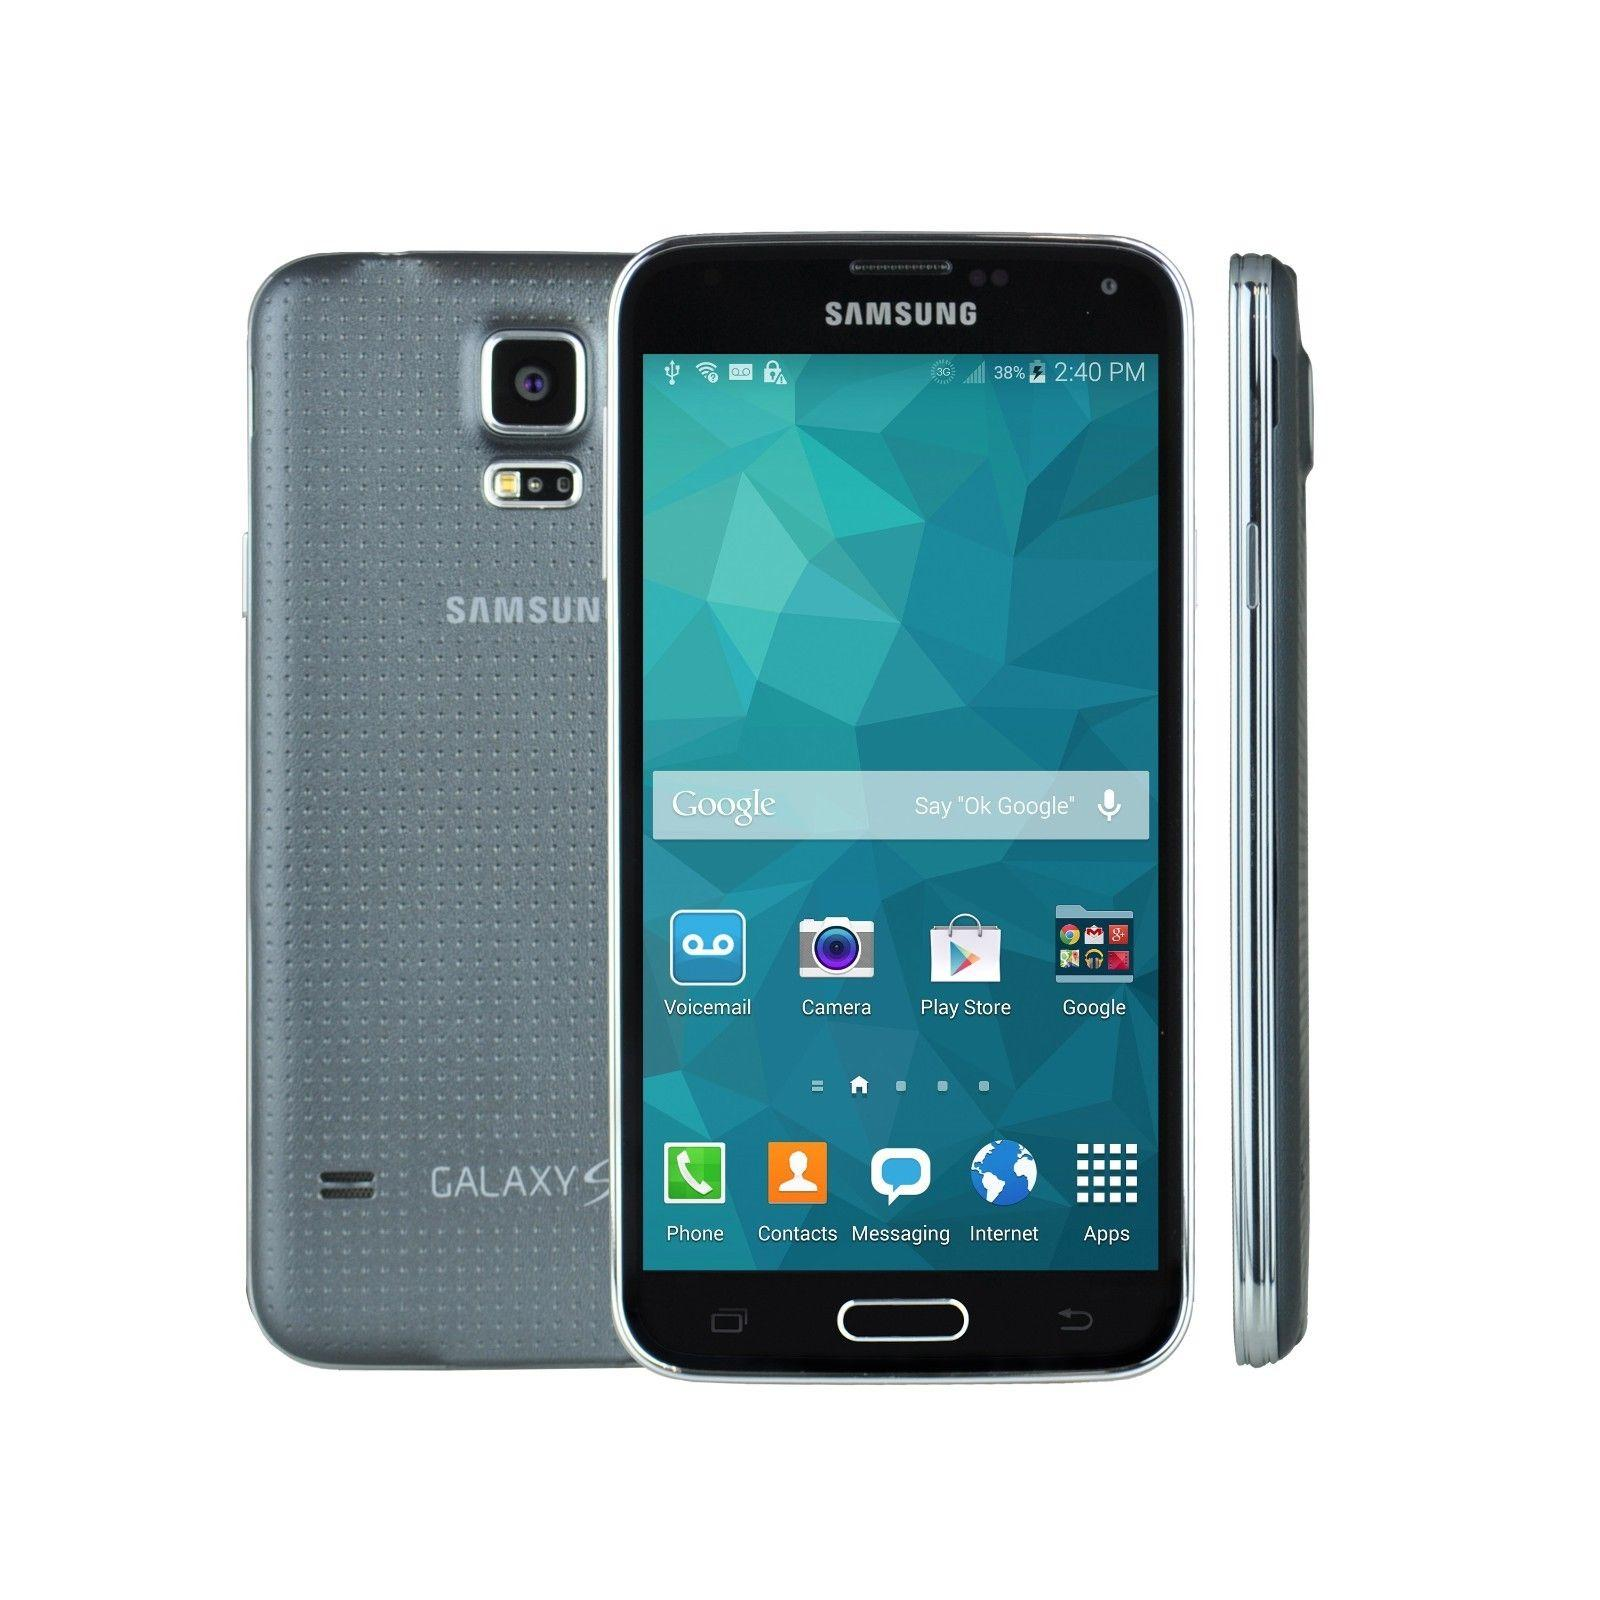 $159.99! Samsung Galaxy S5 16GB G900 LTE Smartphone + 100% Free Mobile Phone Service